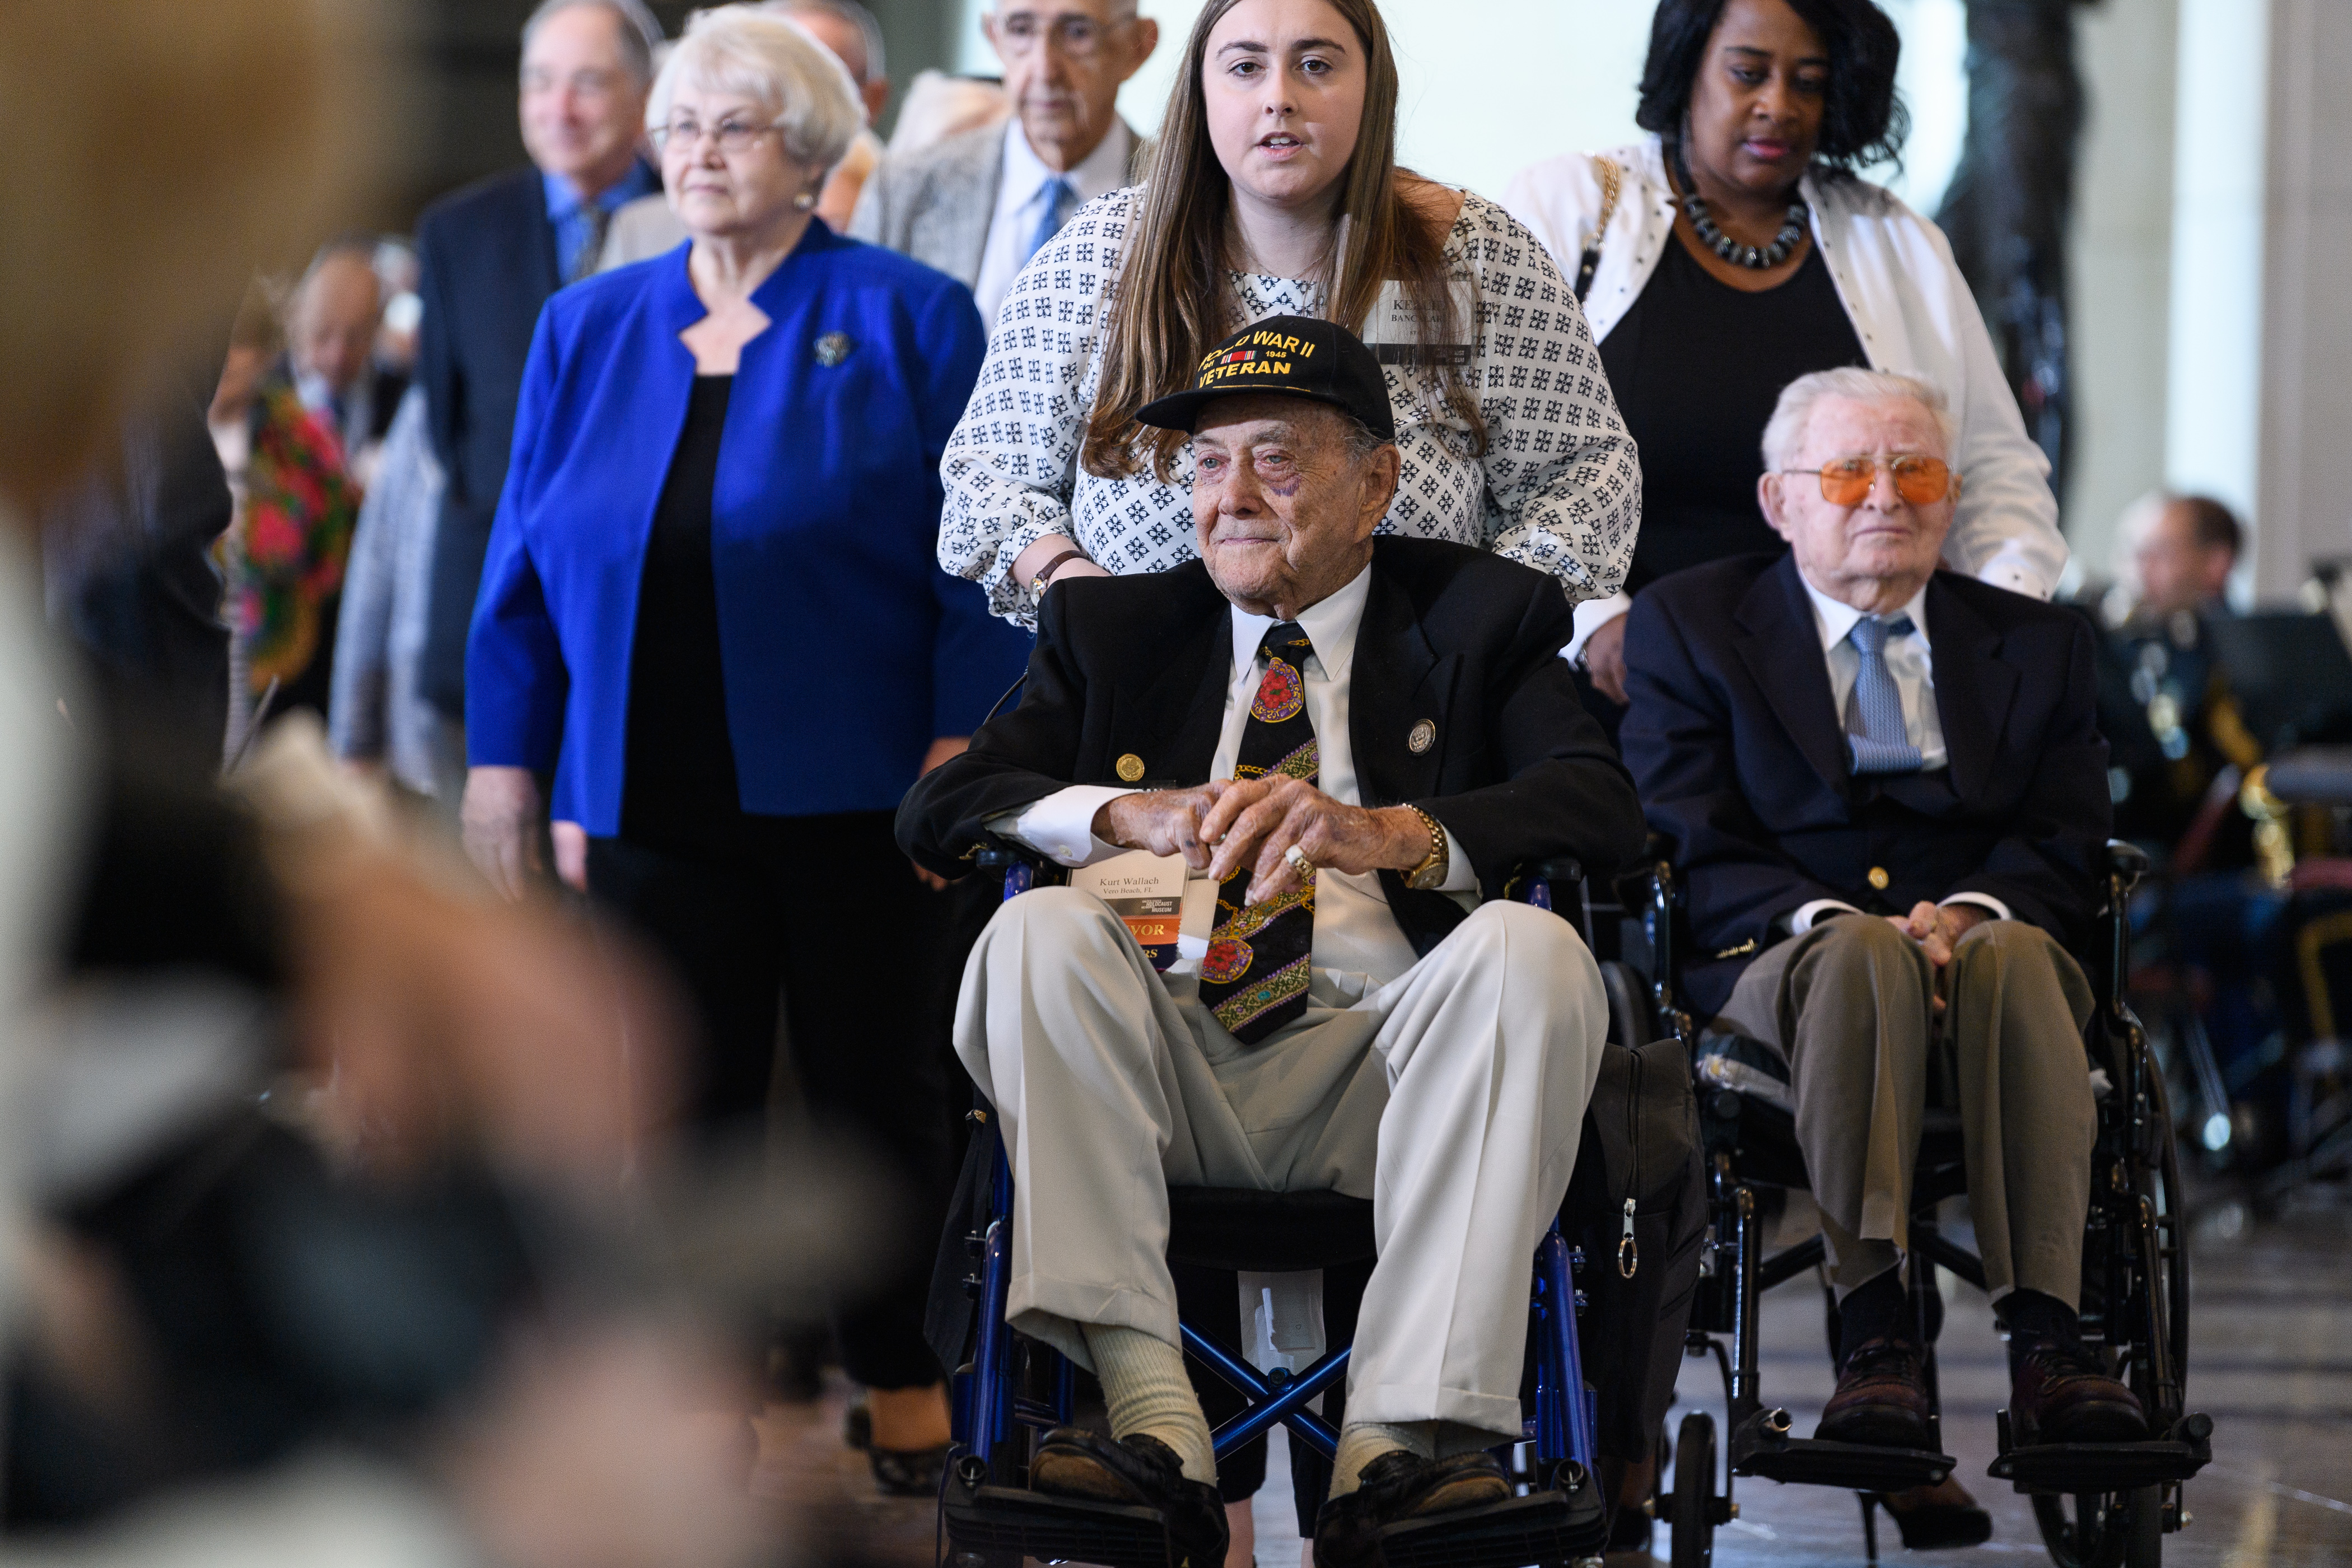 Holocaust survivors and veterans who liberated Nazi concentration camps were honored at the ceremony